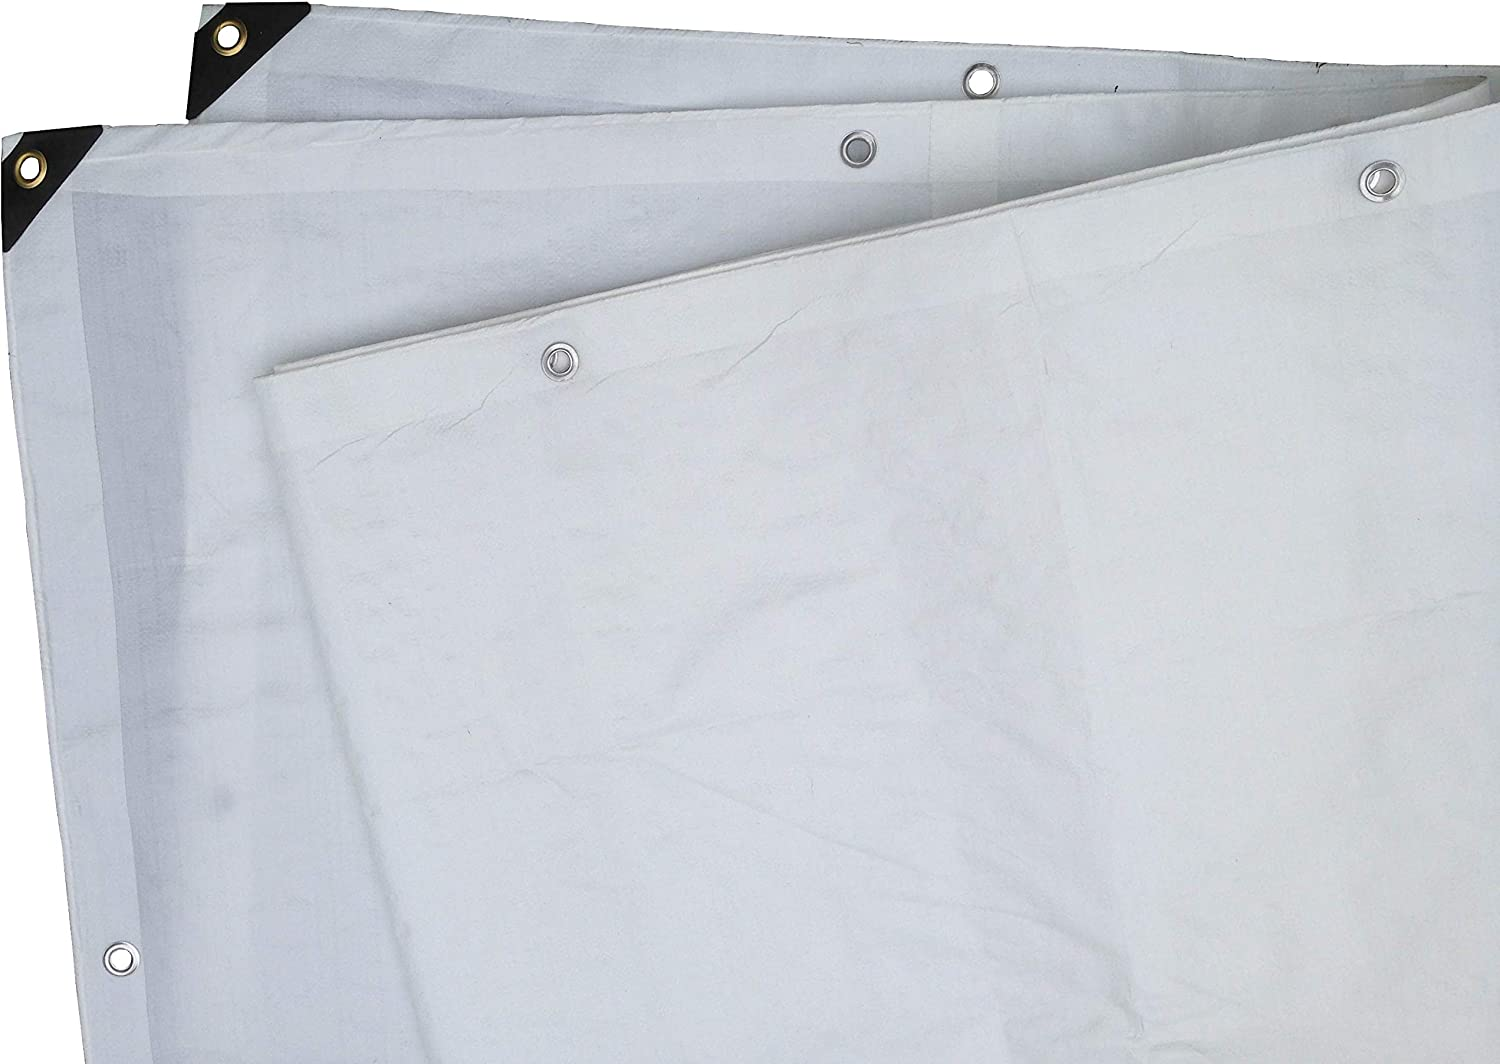 Rip and Tear Resistant Heavy Duty White Poly Tarp 10 x 30 Multipurpose Protective Cover Extra Thick 12 Mil Polyethylene Weather Proof Durable Waterproof by Xpose Safety